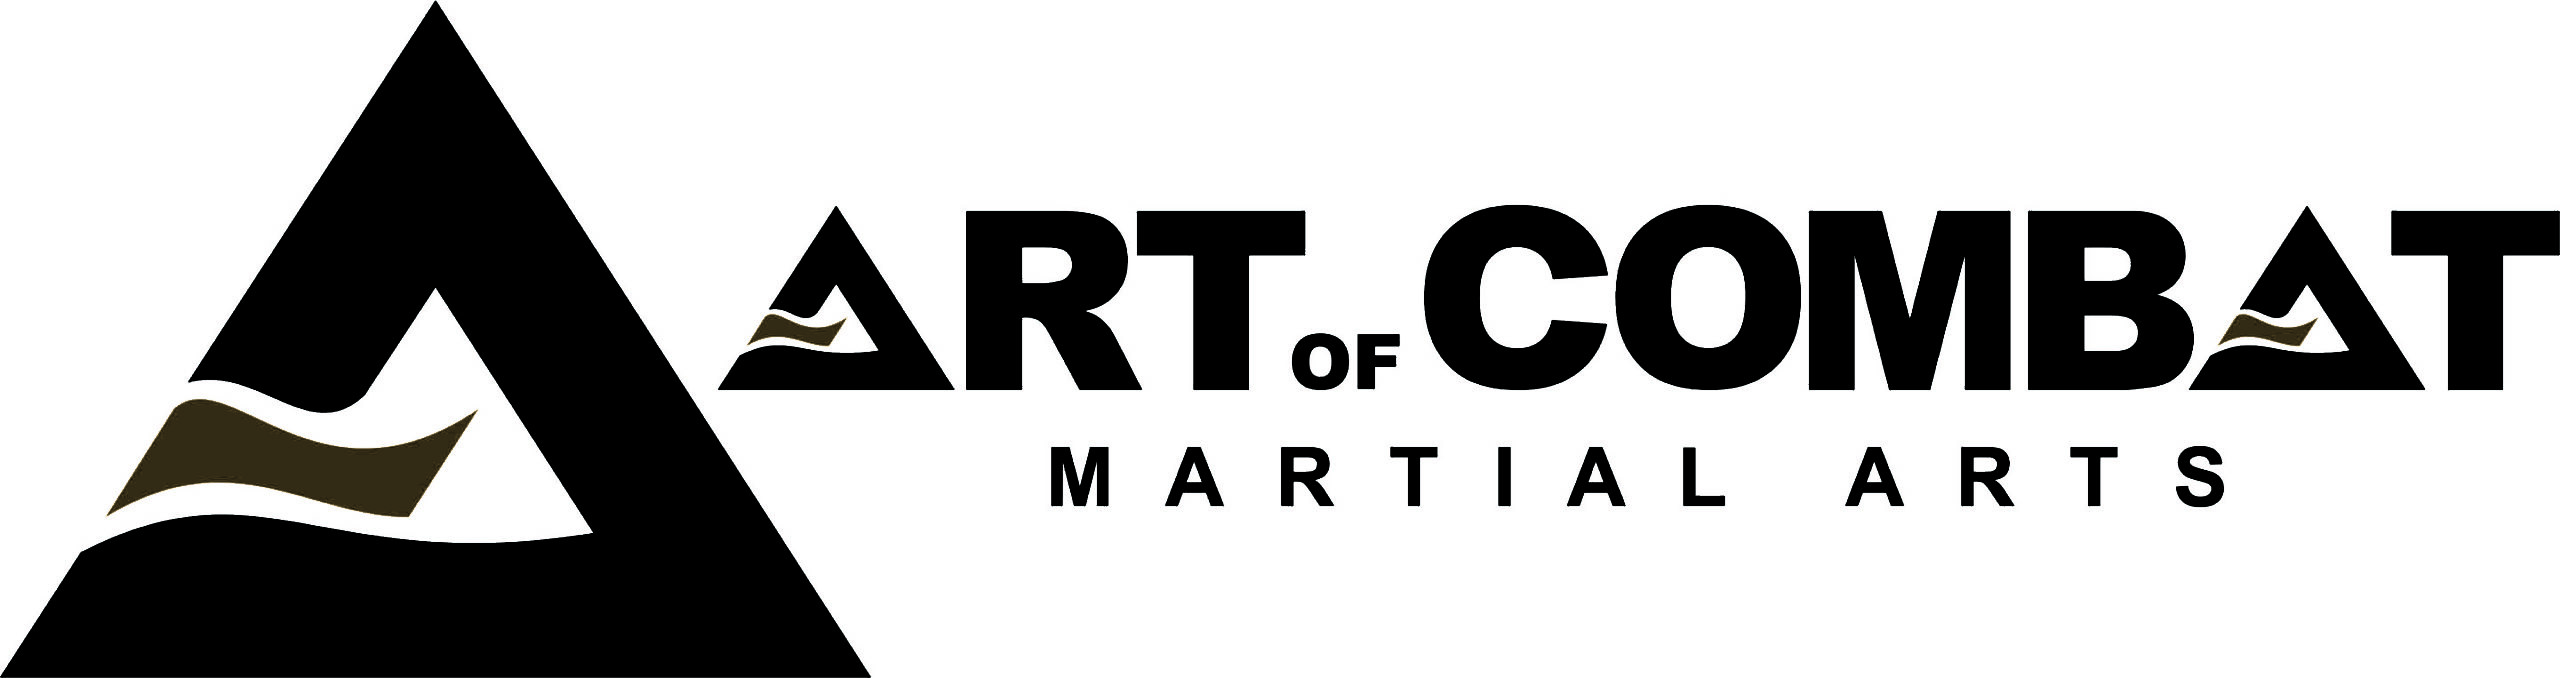 Art Of Combat Martial Arts